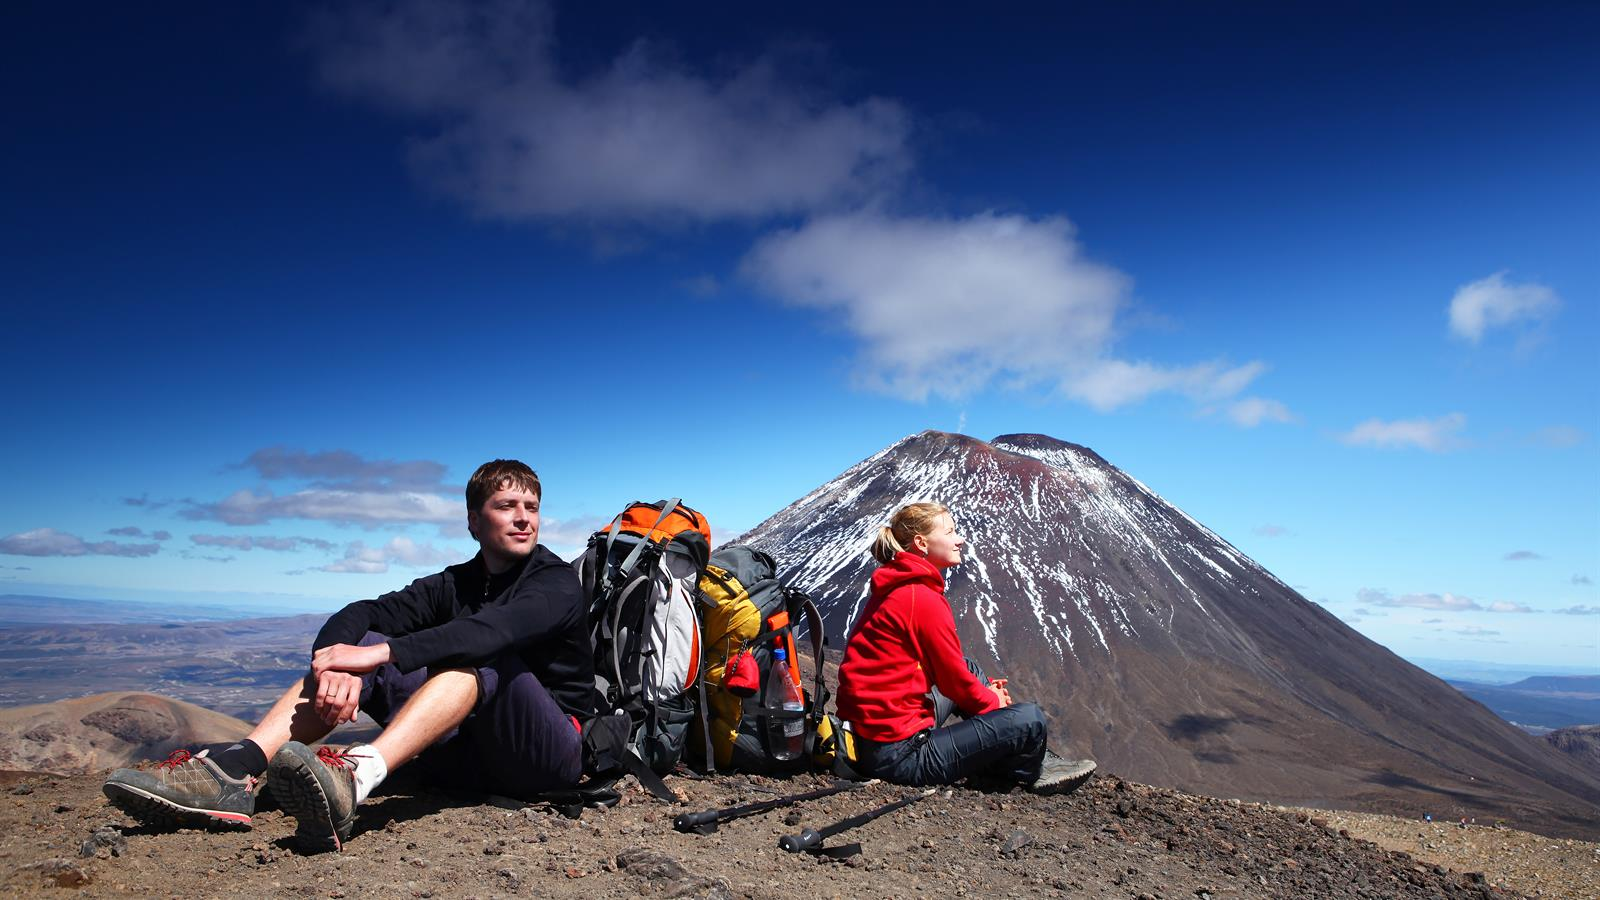 Taking time to admire the view on the Tongariro Alpine Crossing. Pic courtesy tongarirocrossing.org.nz